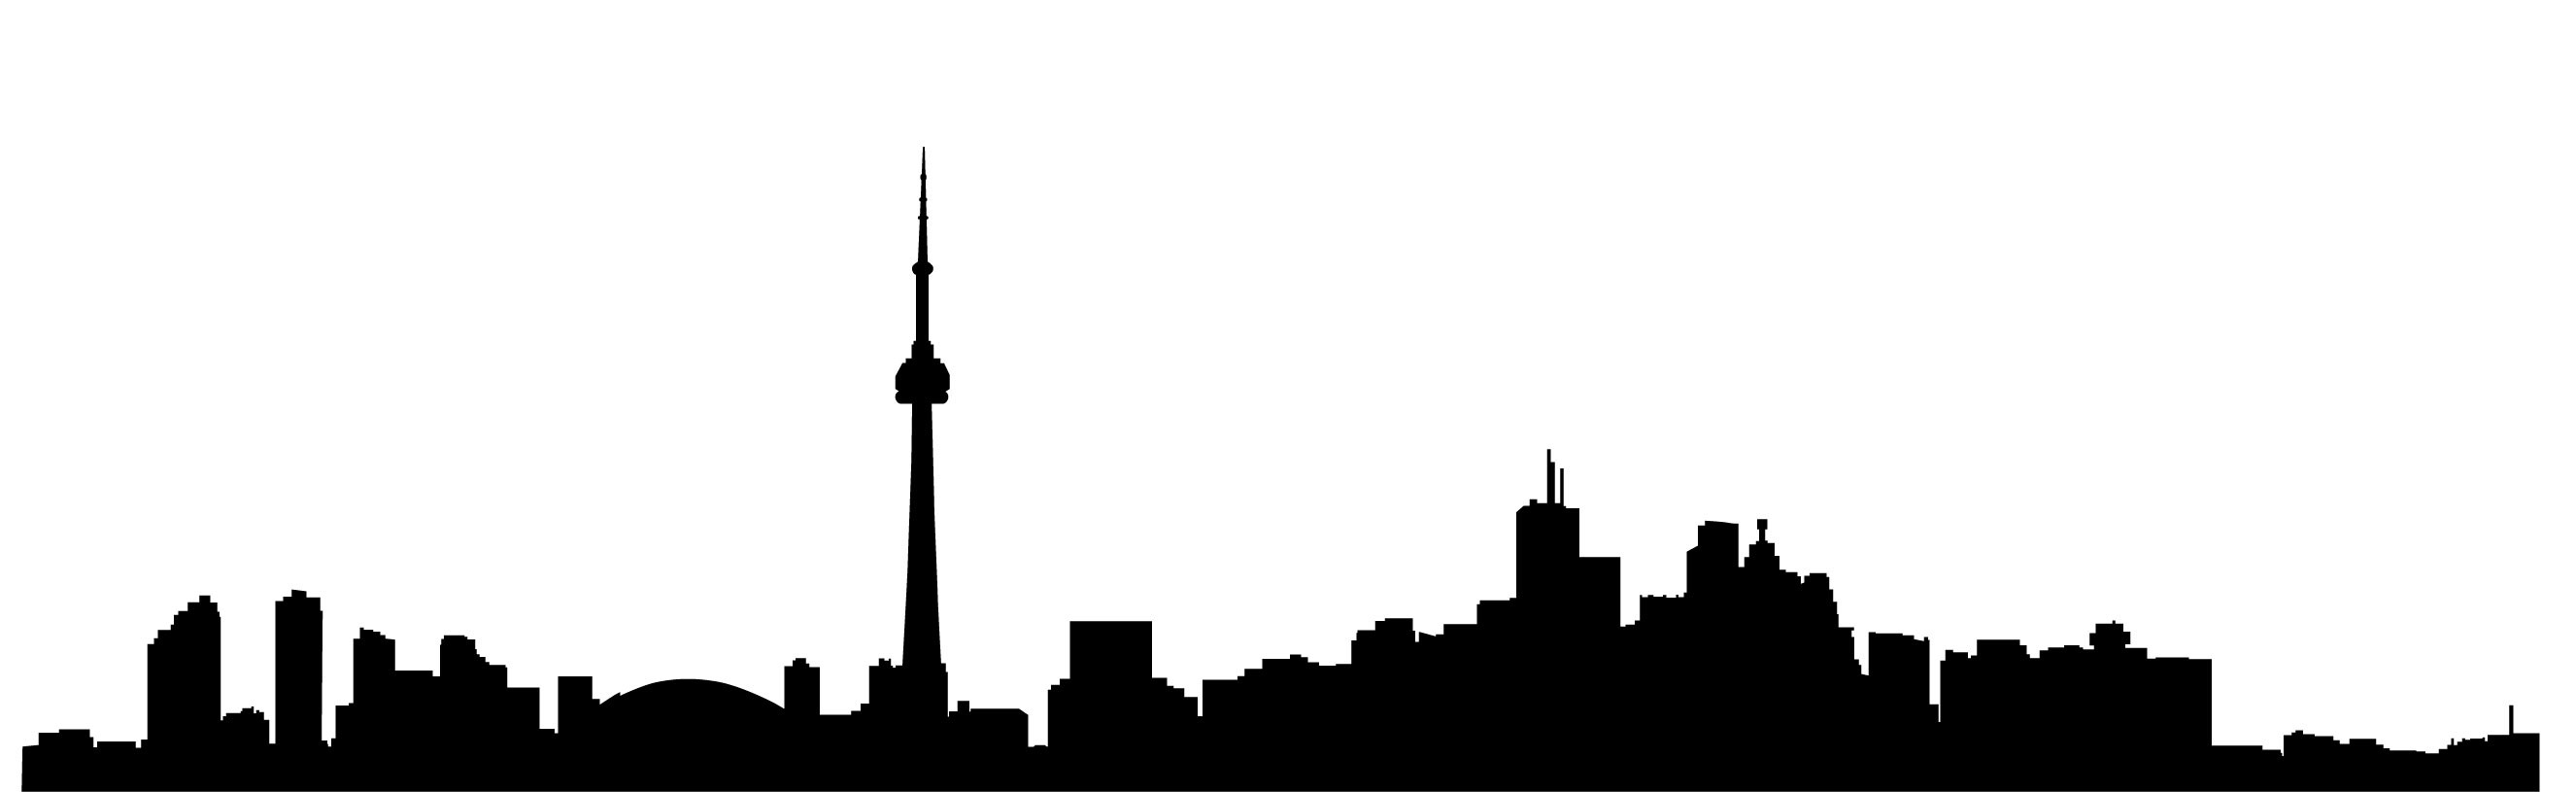 2652x815 Chicago Skyline Outline Drawing City Silhouette Background